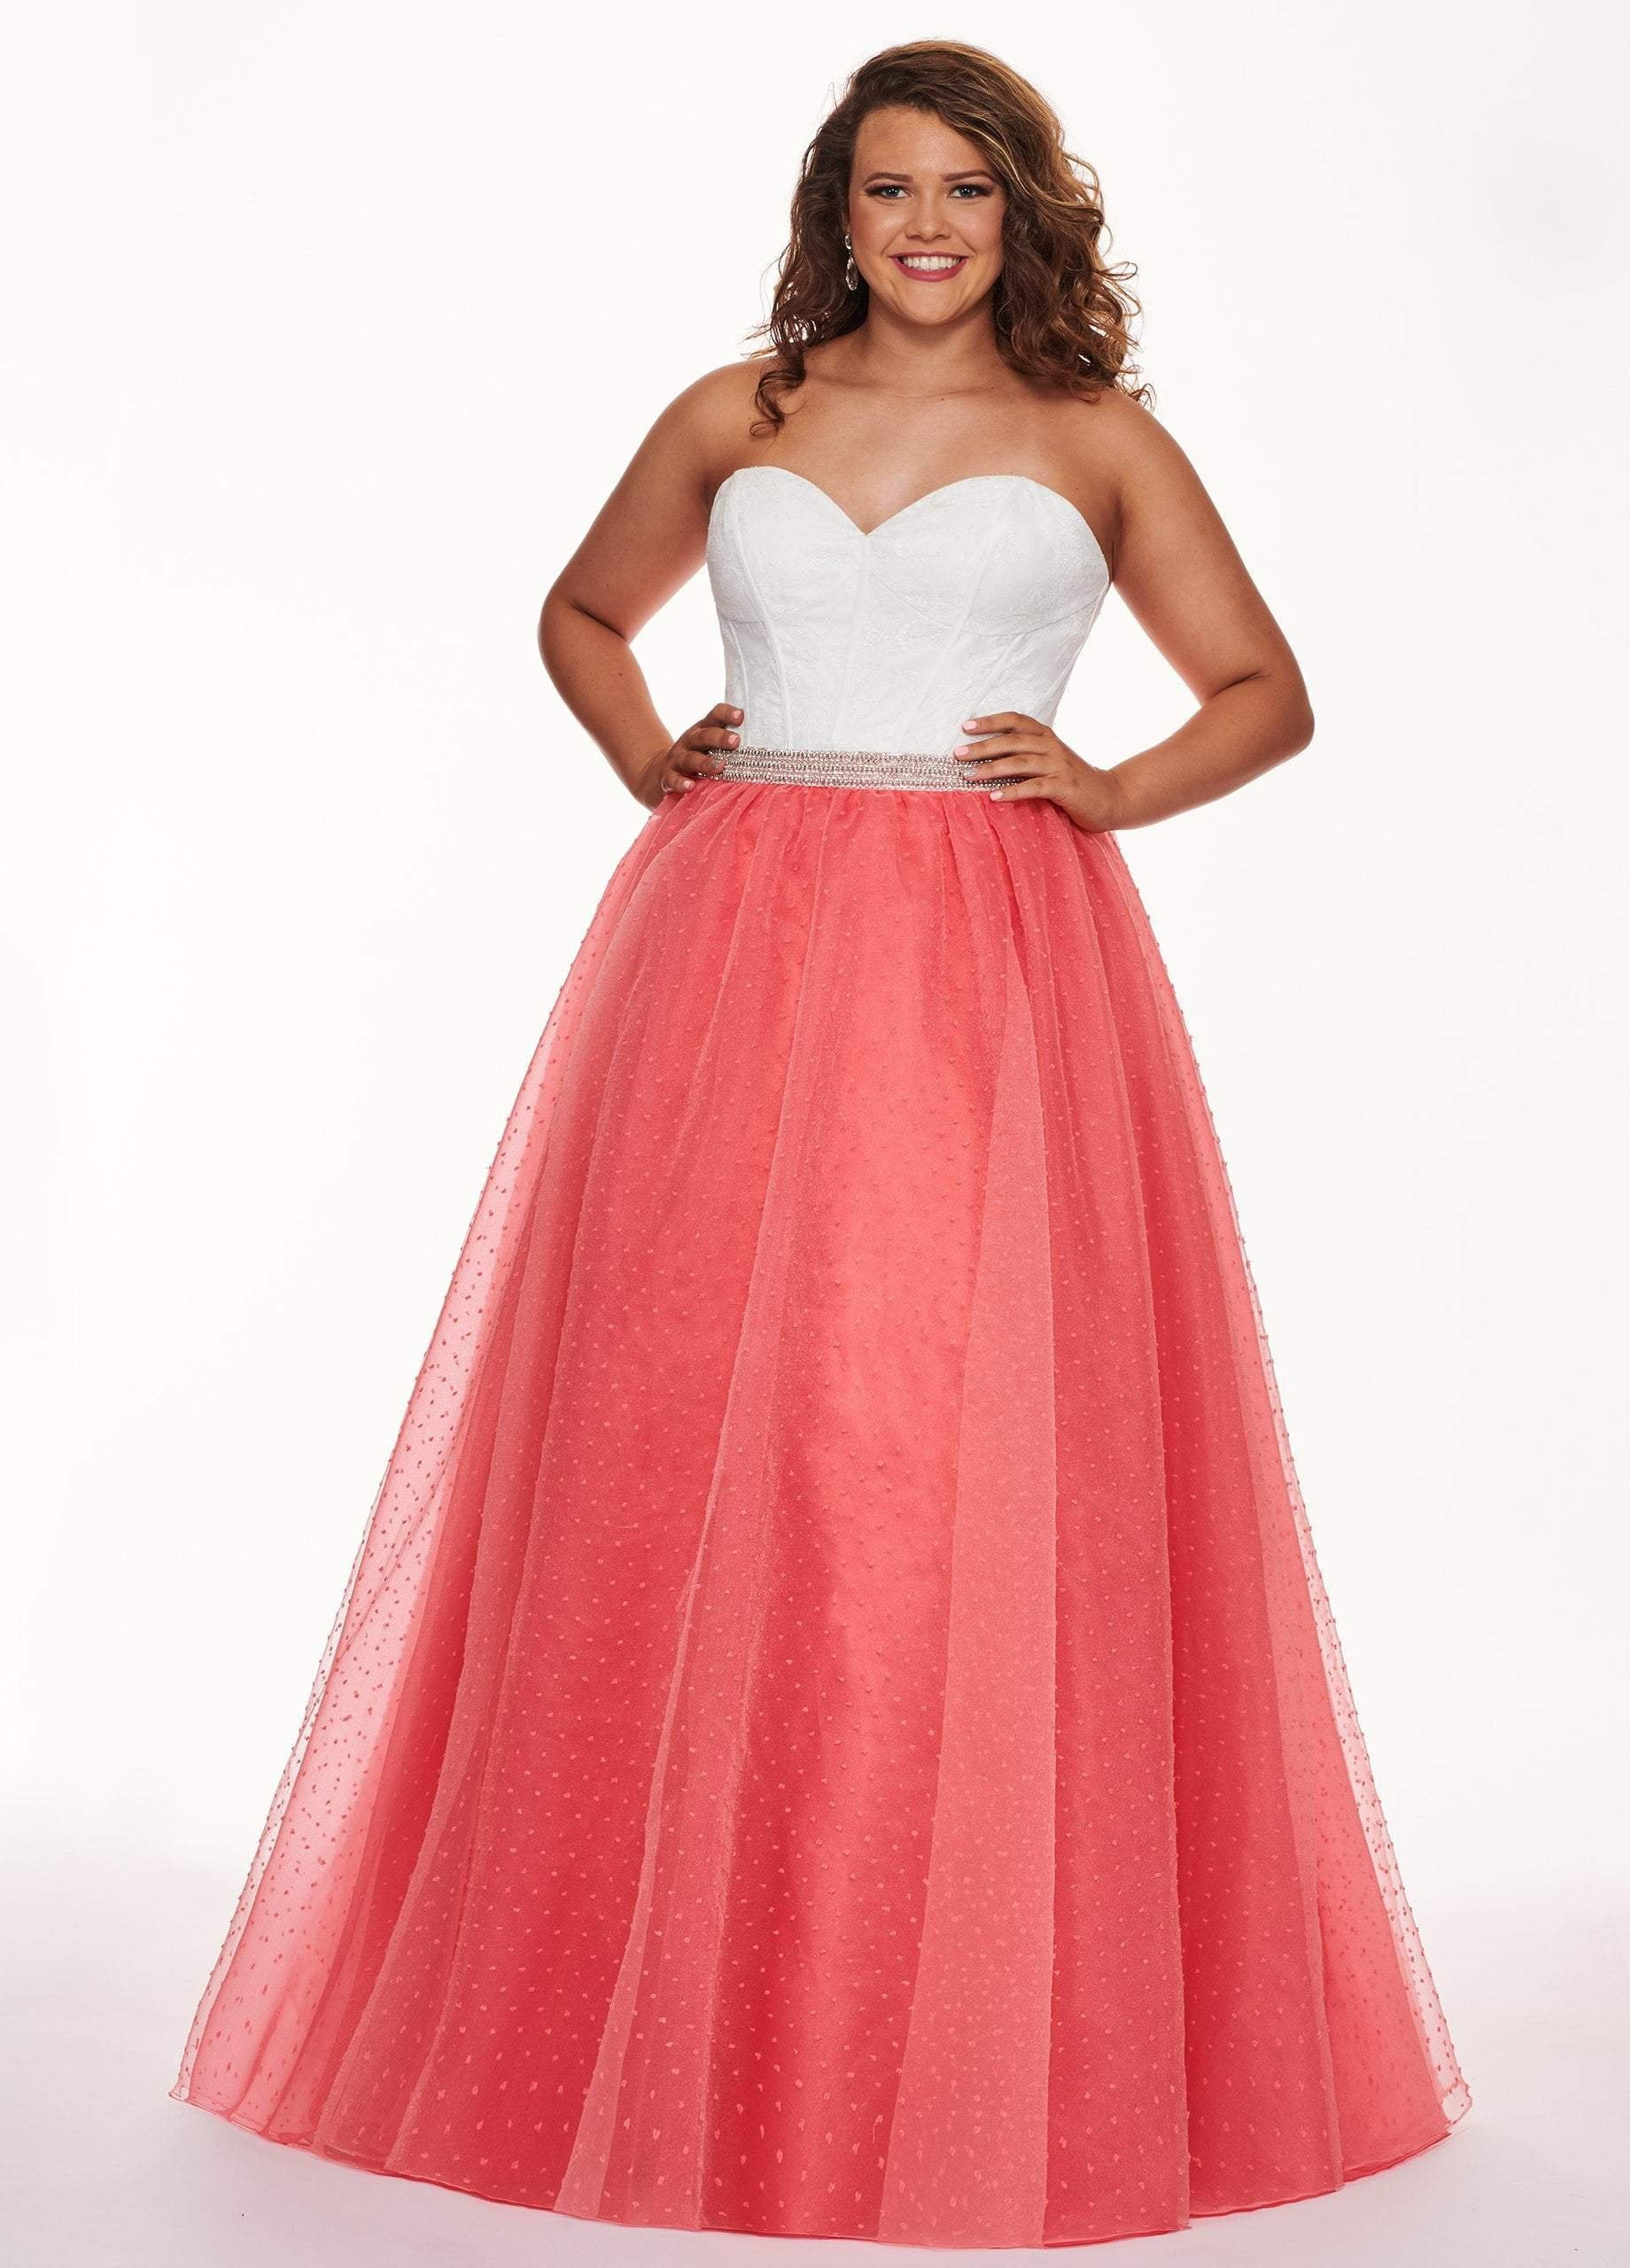 Rachel Allan Curves - 6677 Strapless Sweetheart Pleated Ballgown In White and Pink